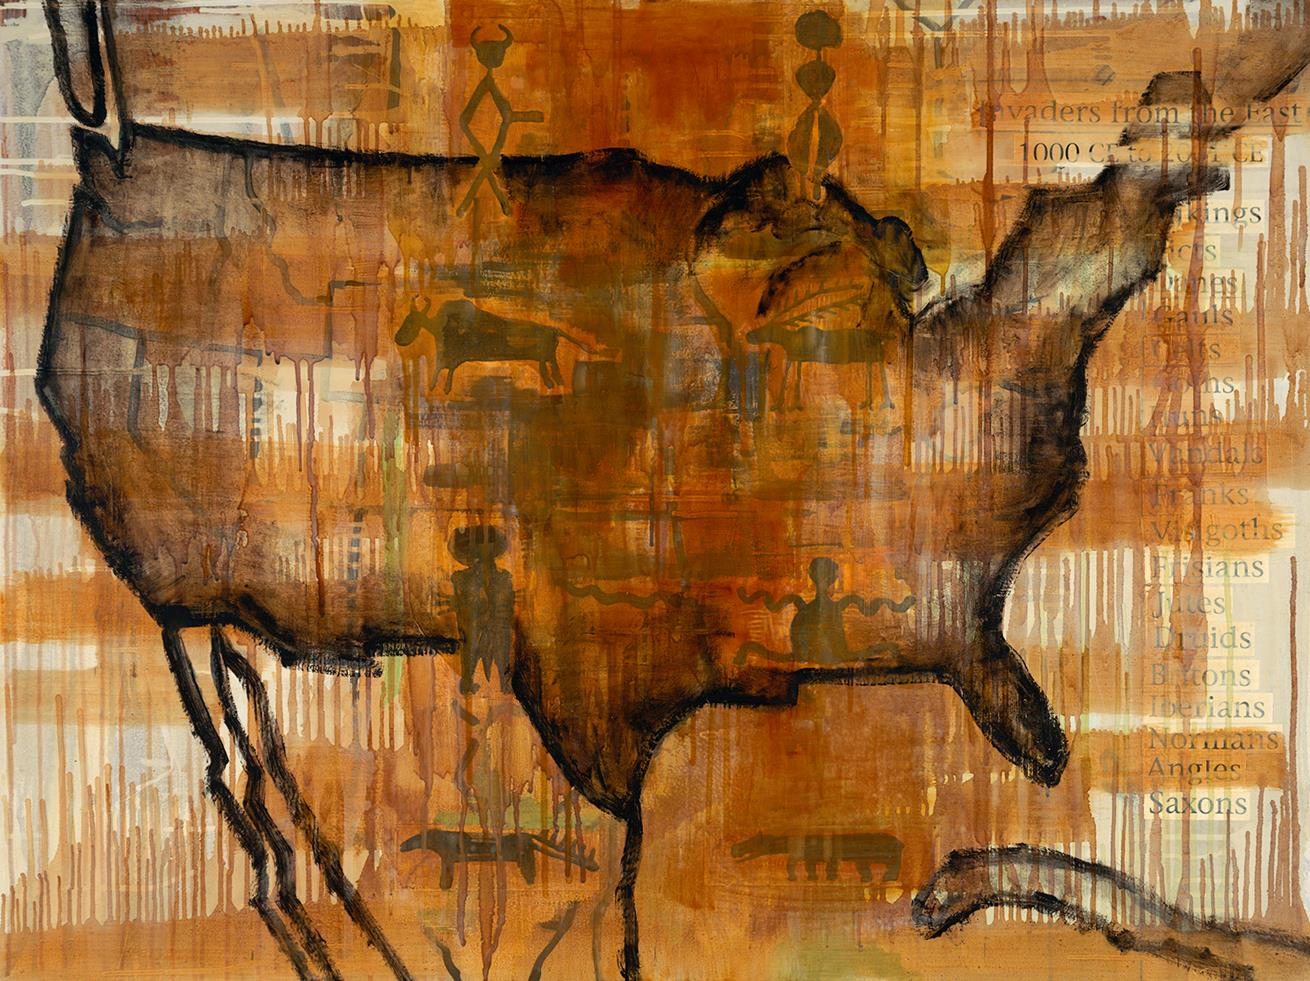 Jaune Quick-to-See Smith, NA, The Browning of America, 2000, mixed media on canvas, 36 x 48 inches. Collection of the Crocker Art Museum, Sacramento, California. Purchase with contributions from Gail and John Enns and the George and Bea Gibson Fund, 2007.23.